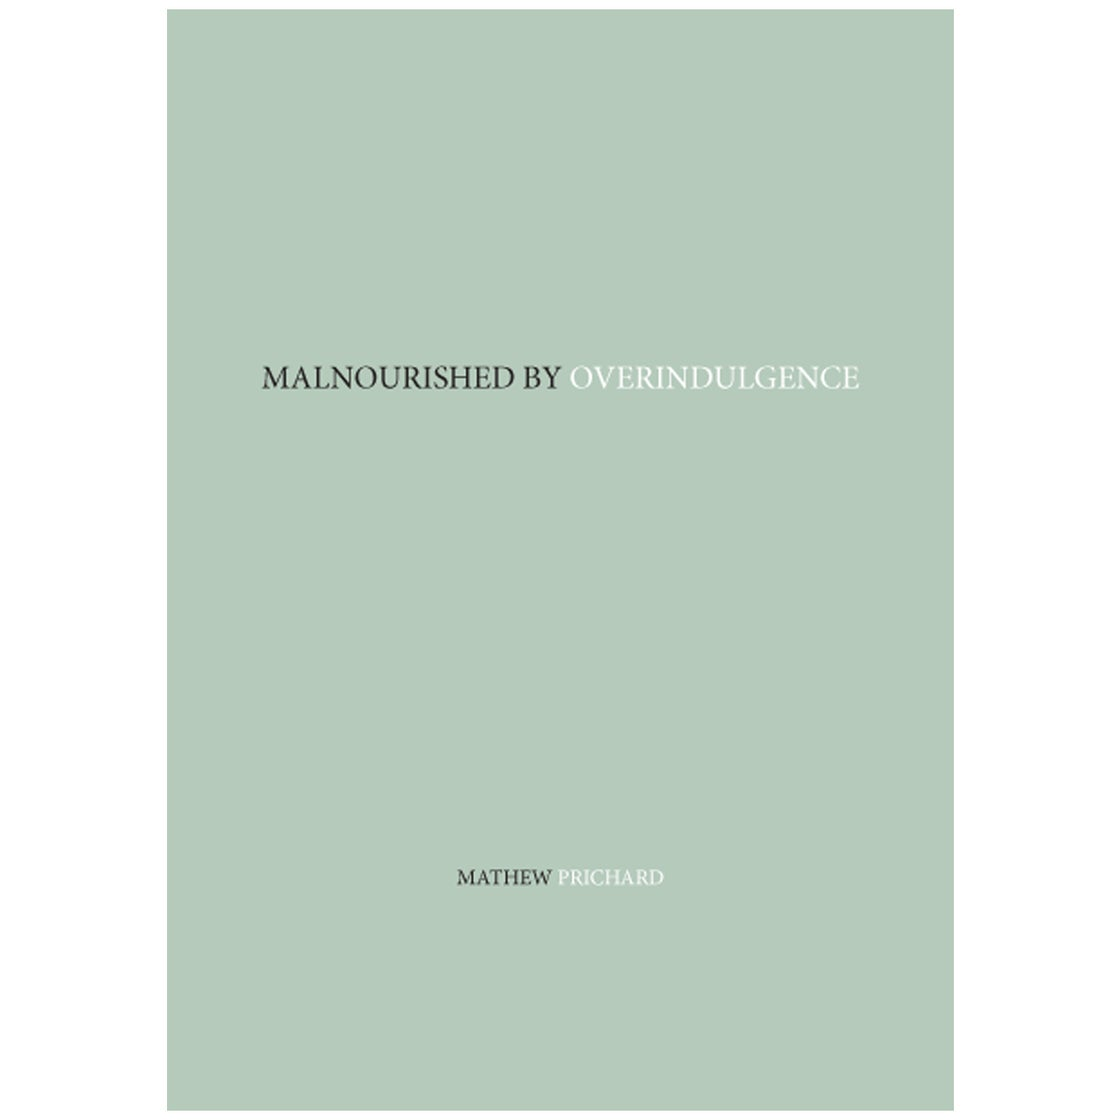 Image of 'Malnourished by Overindulgence' - Book